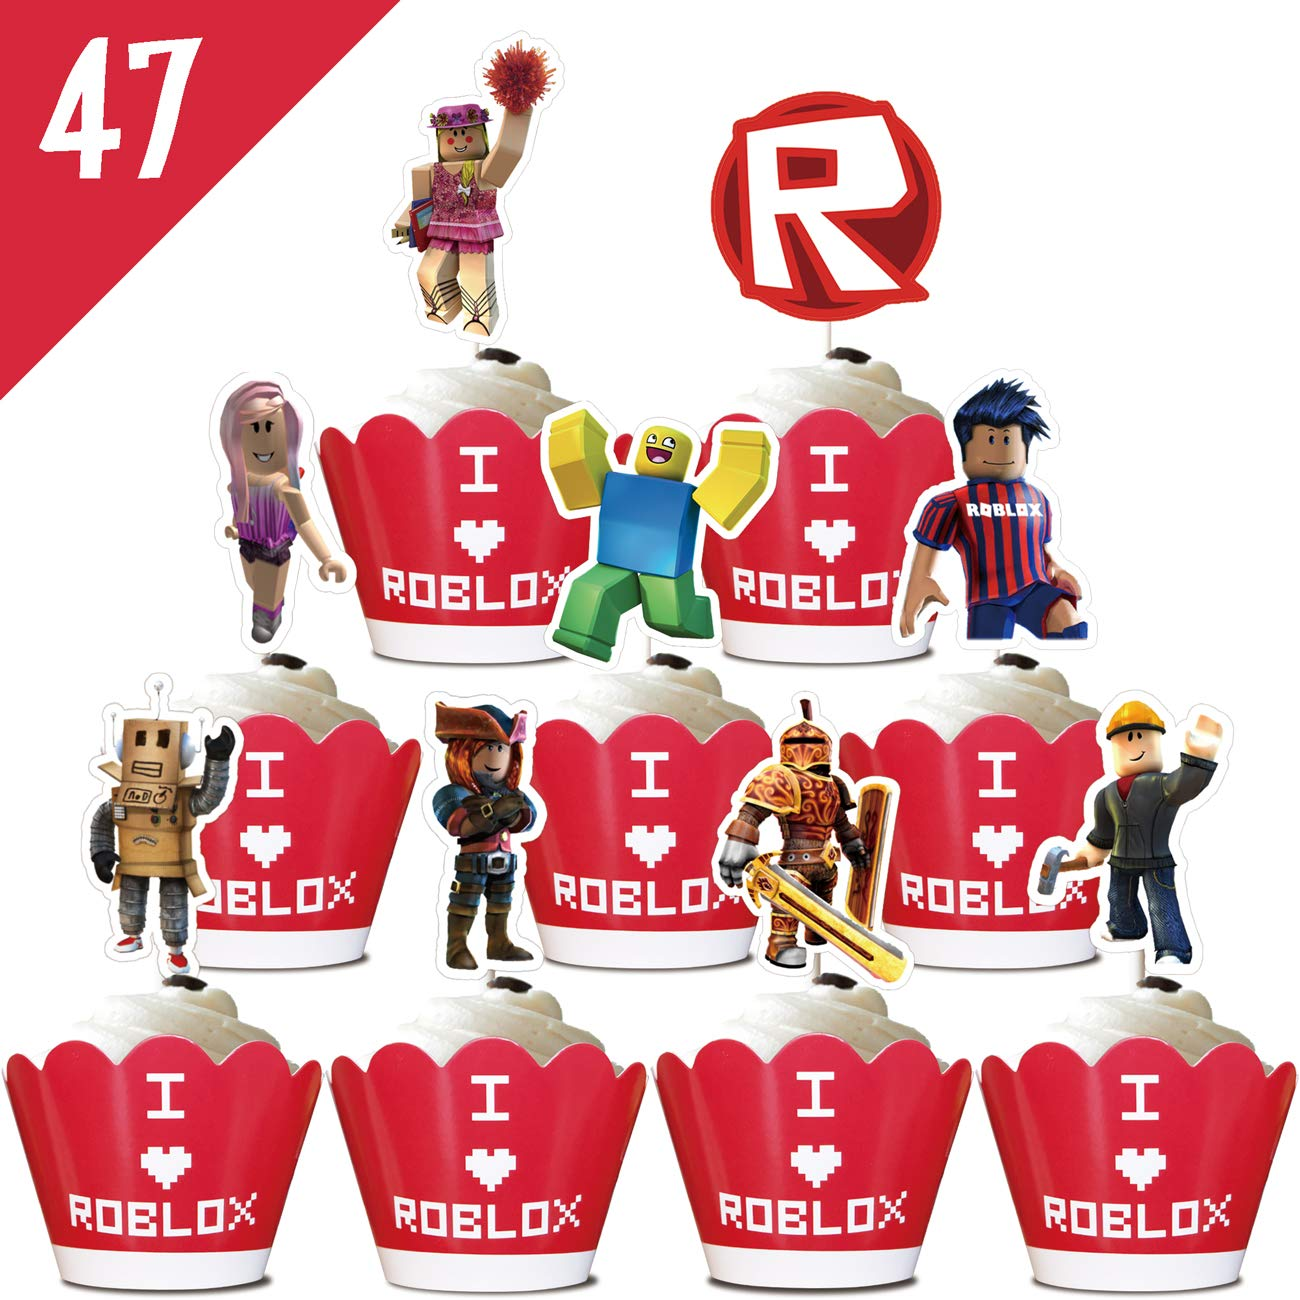 Kirby Feet Roblox Roblox Cupcake Cake Toppers Set Of 12 Made To Order Fast Shipping